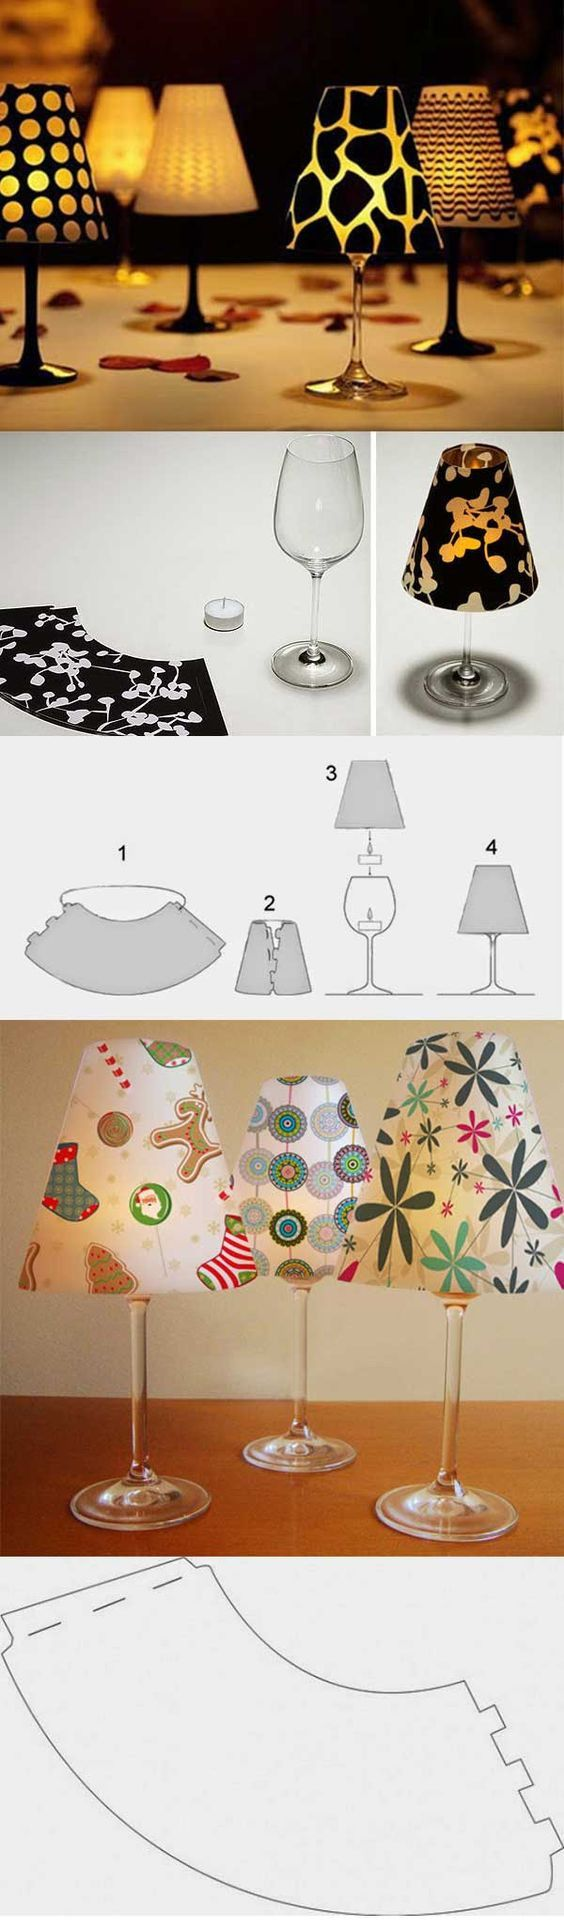 30+ DIY Ways In Which You Can Make Your House Look More Creative For ...